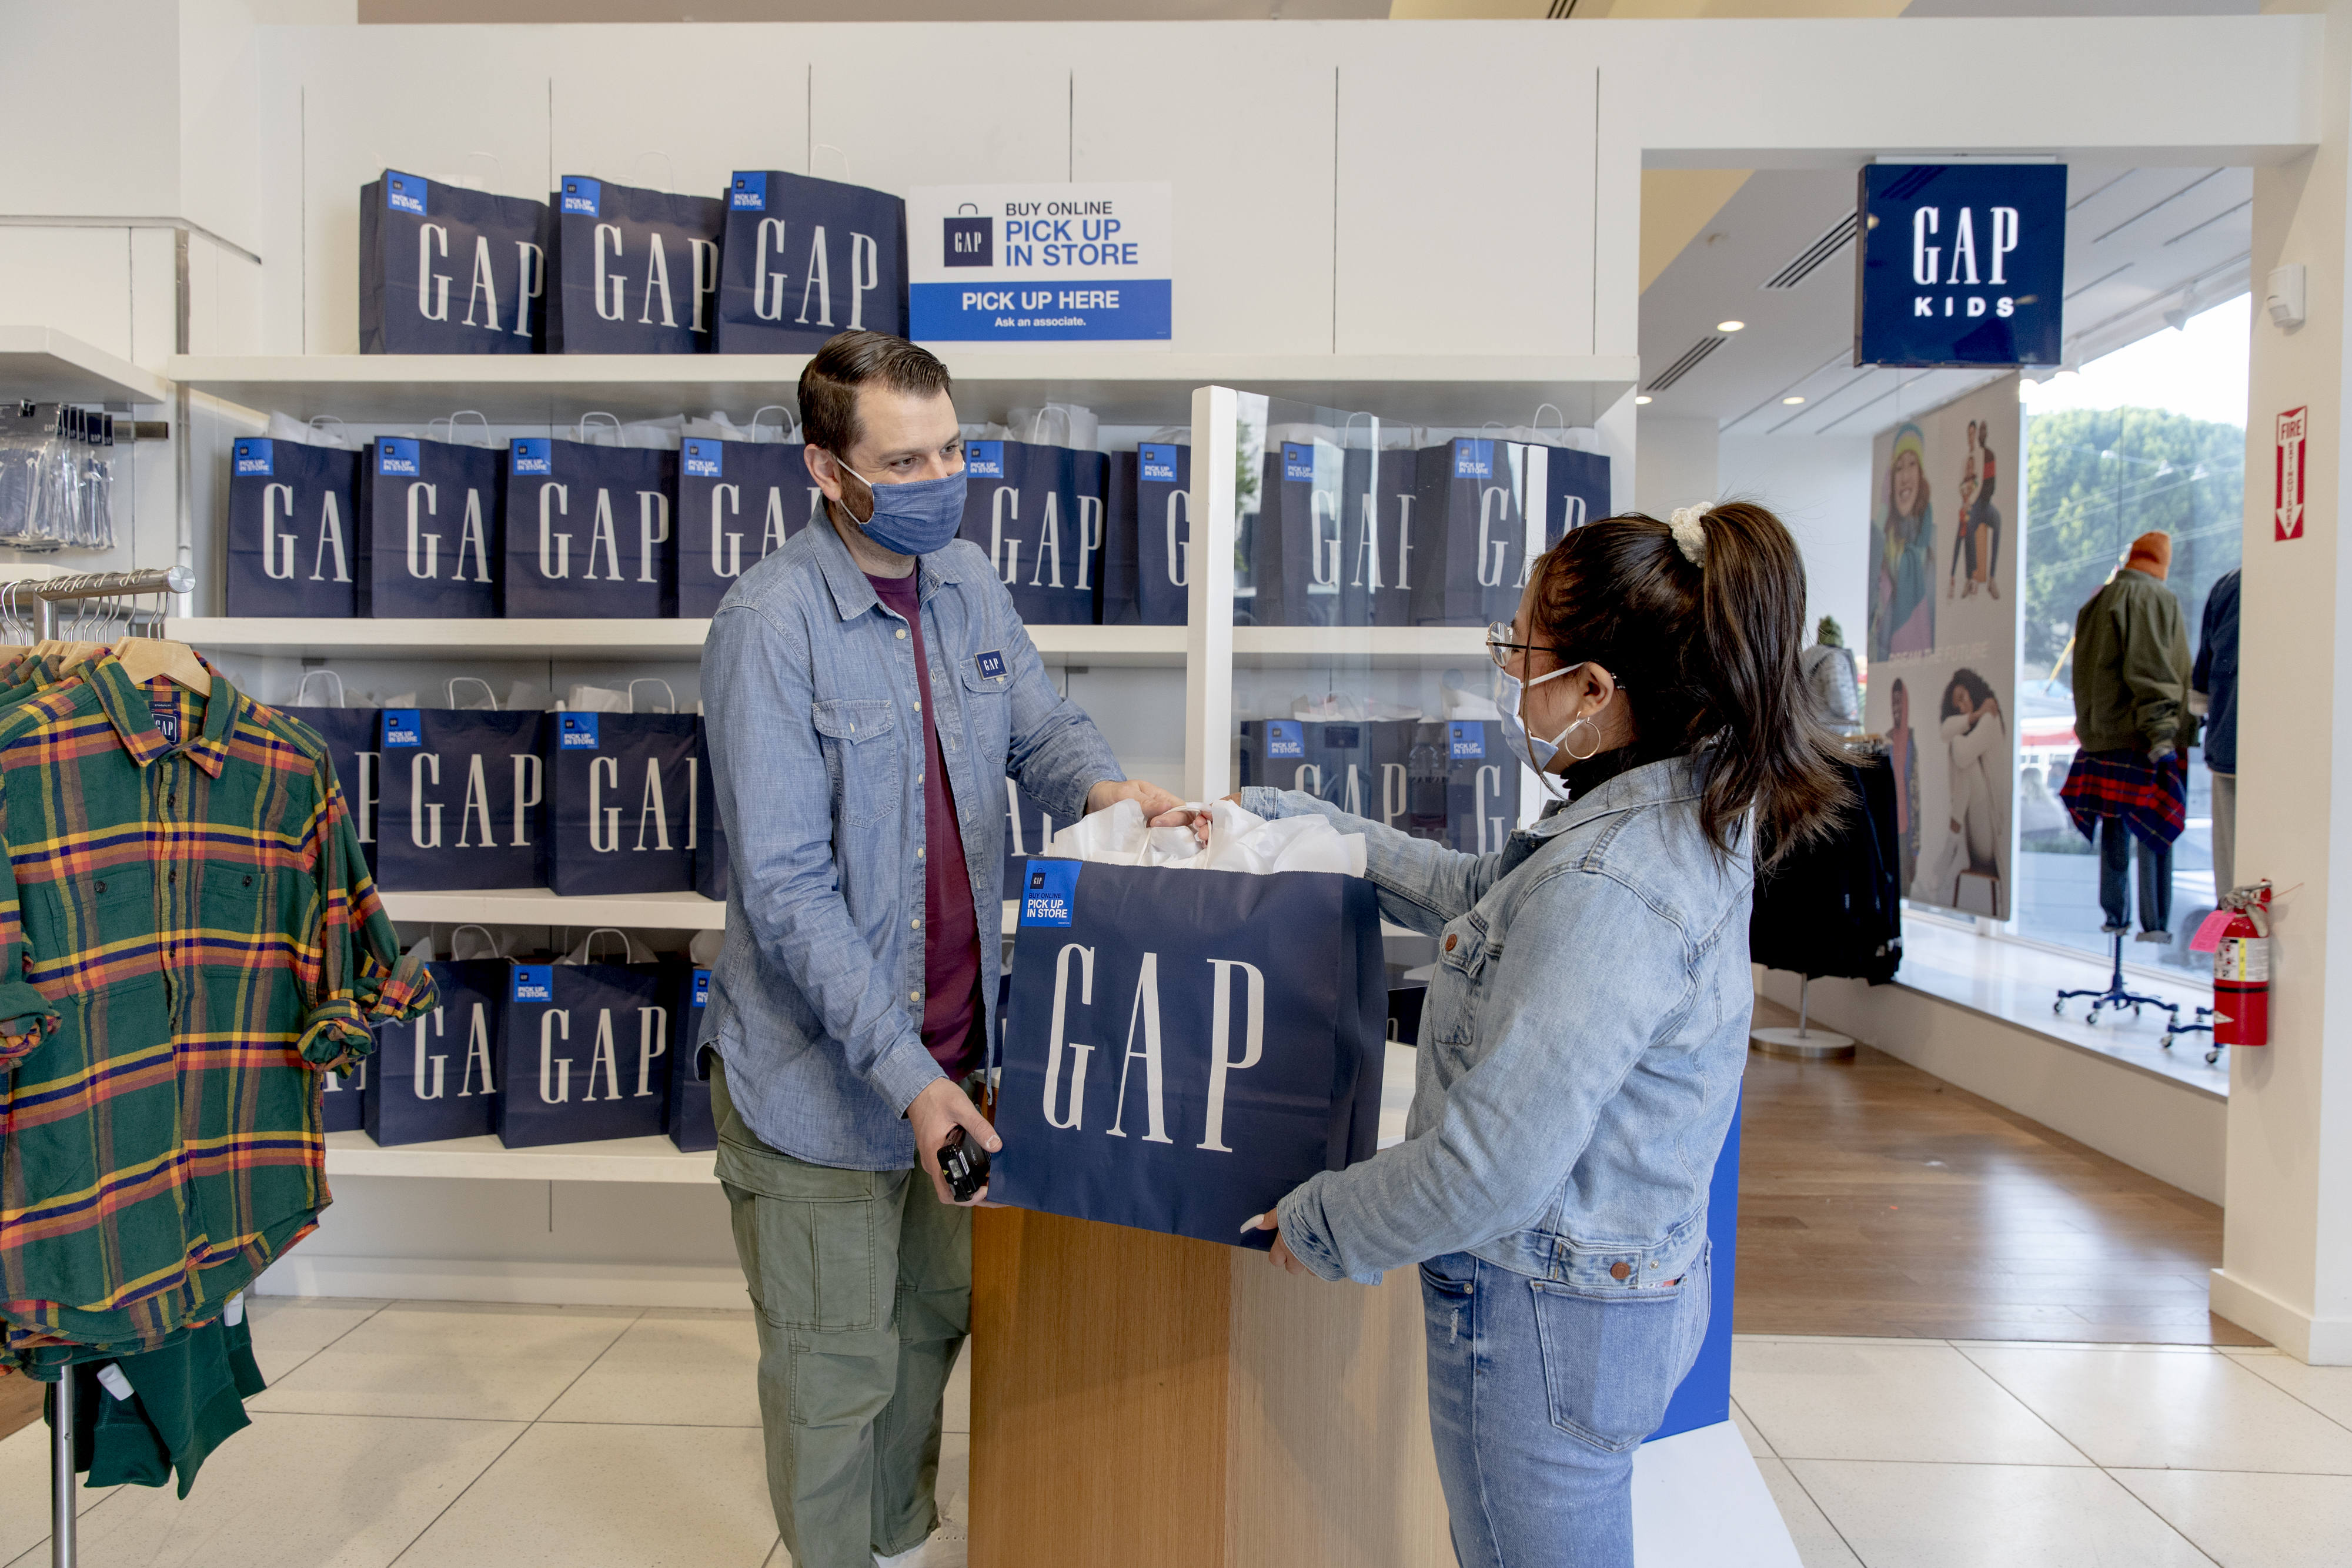 gap store pick up in store mask